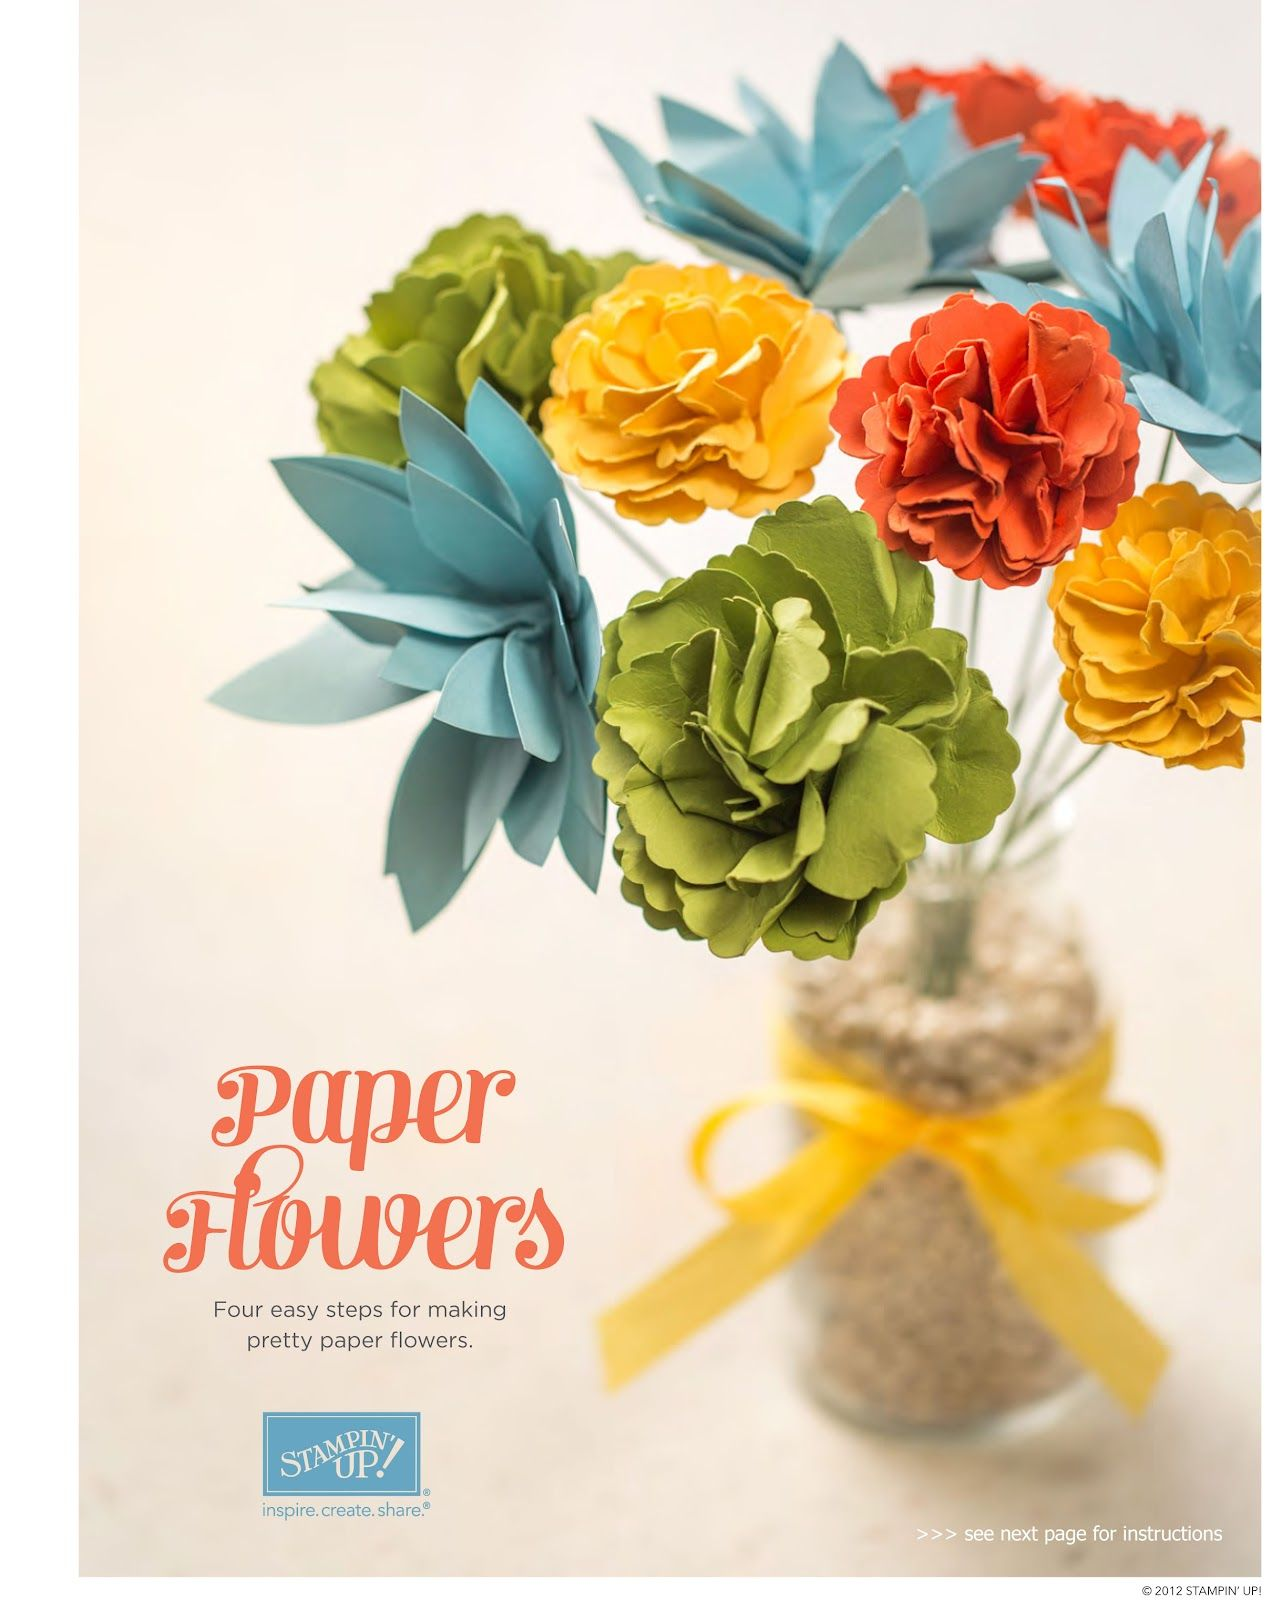 Stampin Up Paper Flowers Tutorial Stampin Up Pinterest Paper